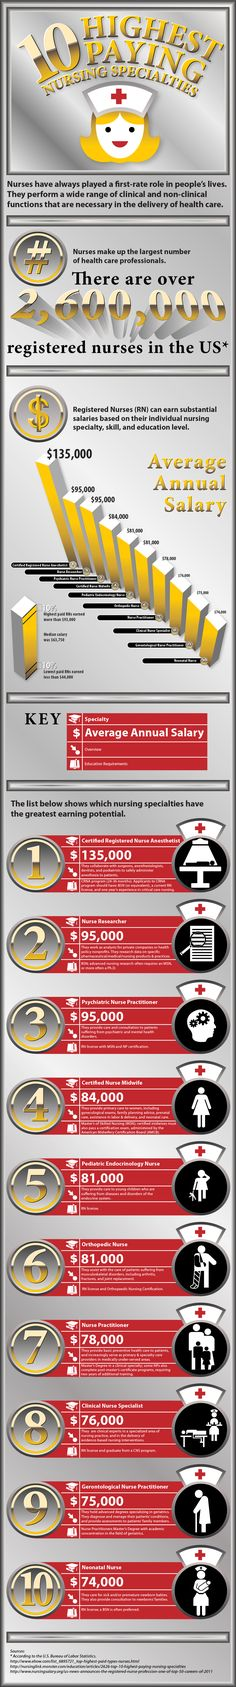 Top 10 Paying Nursing Specialties